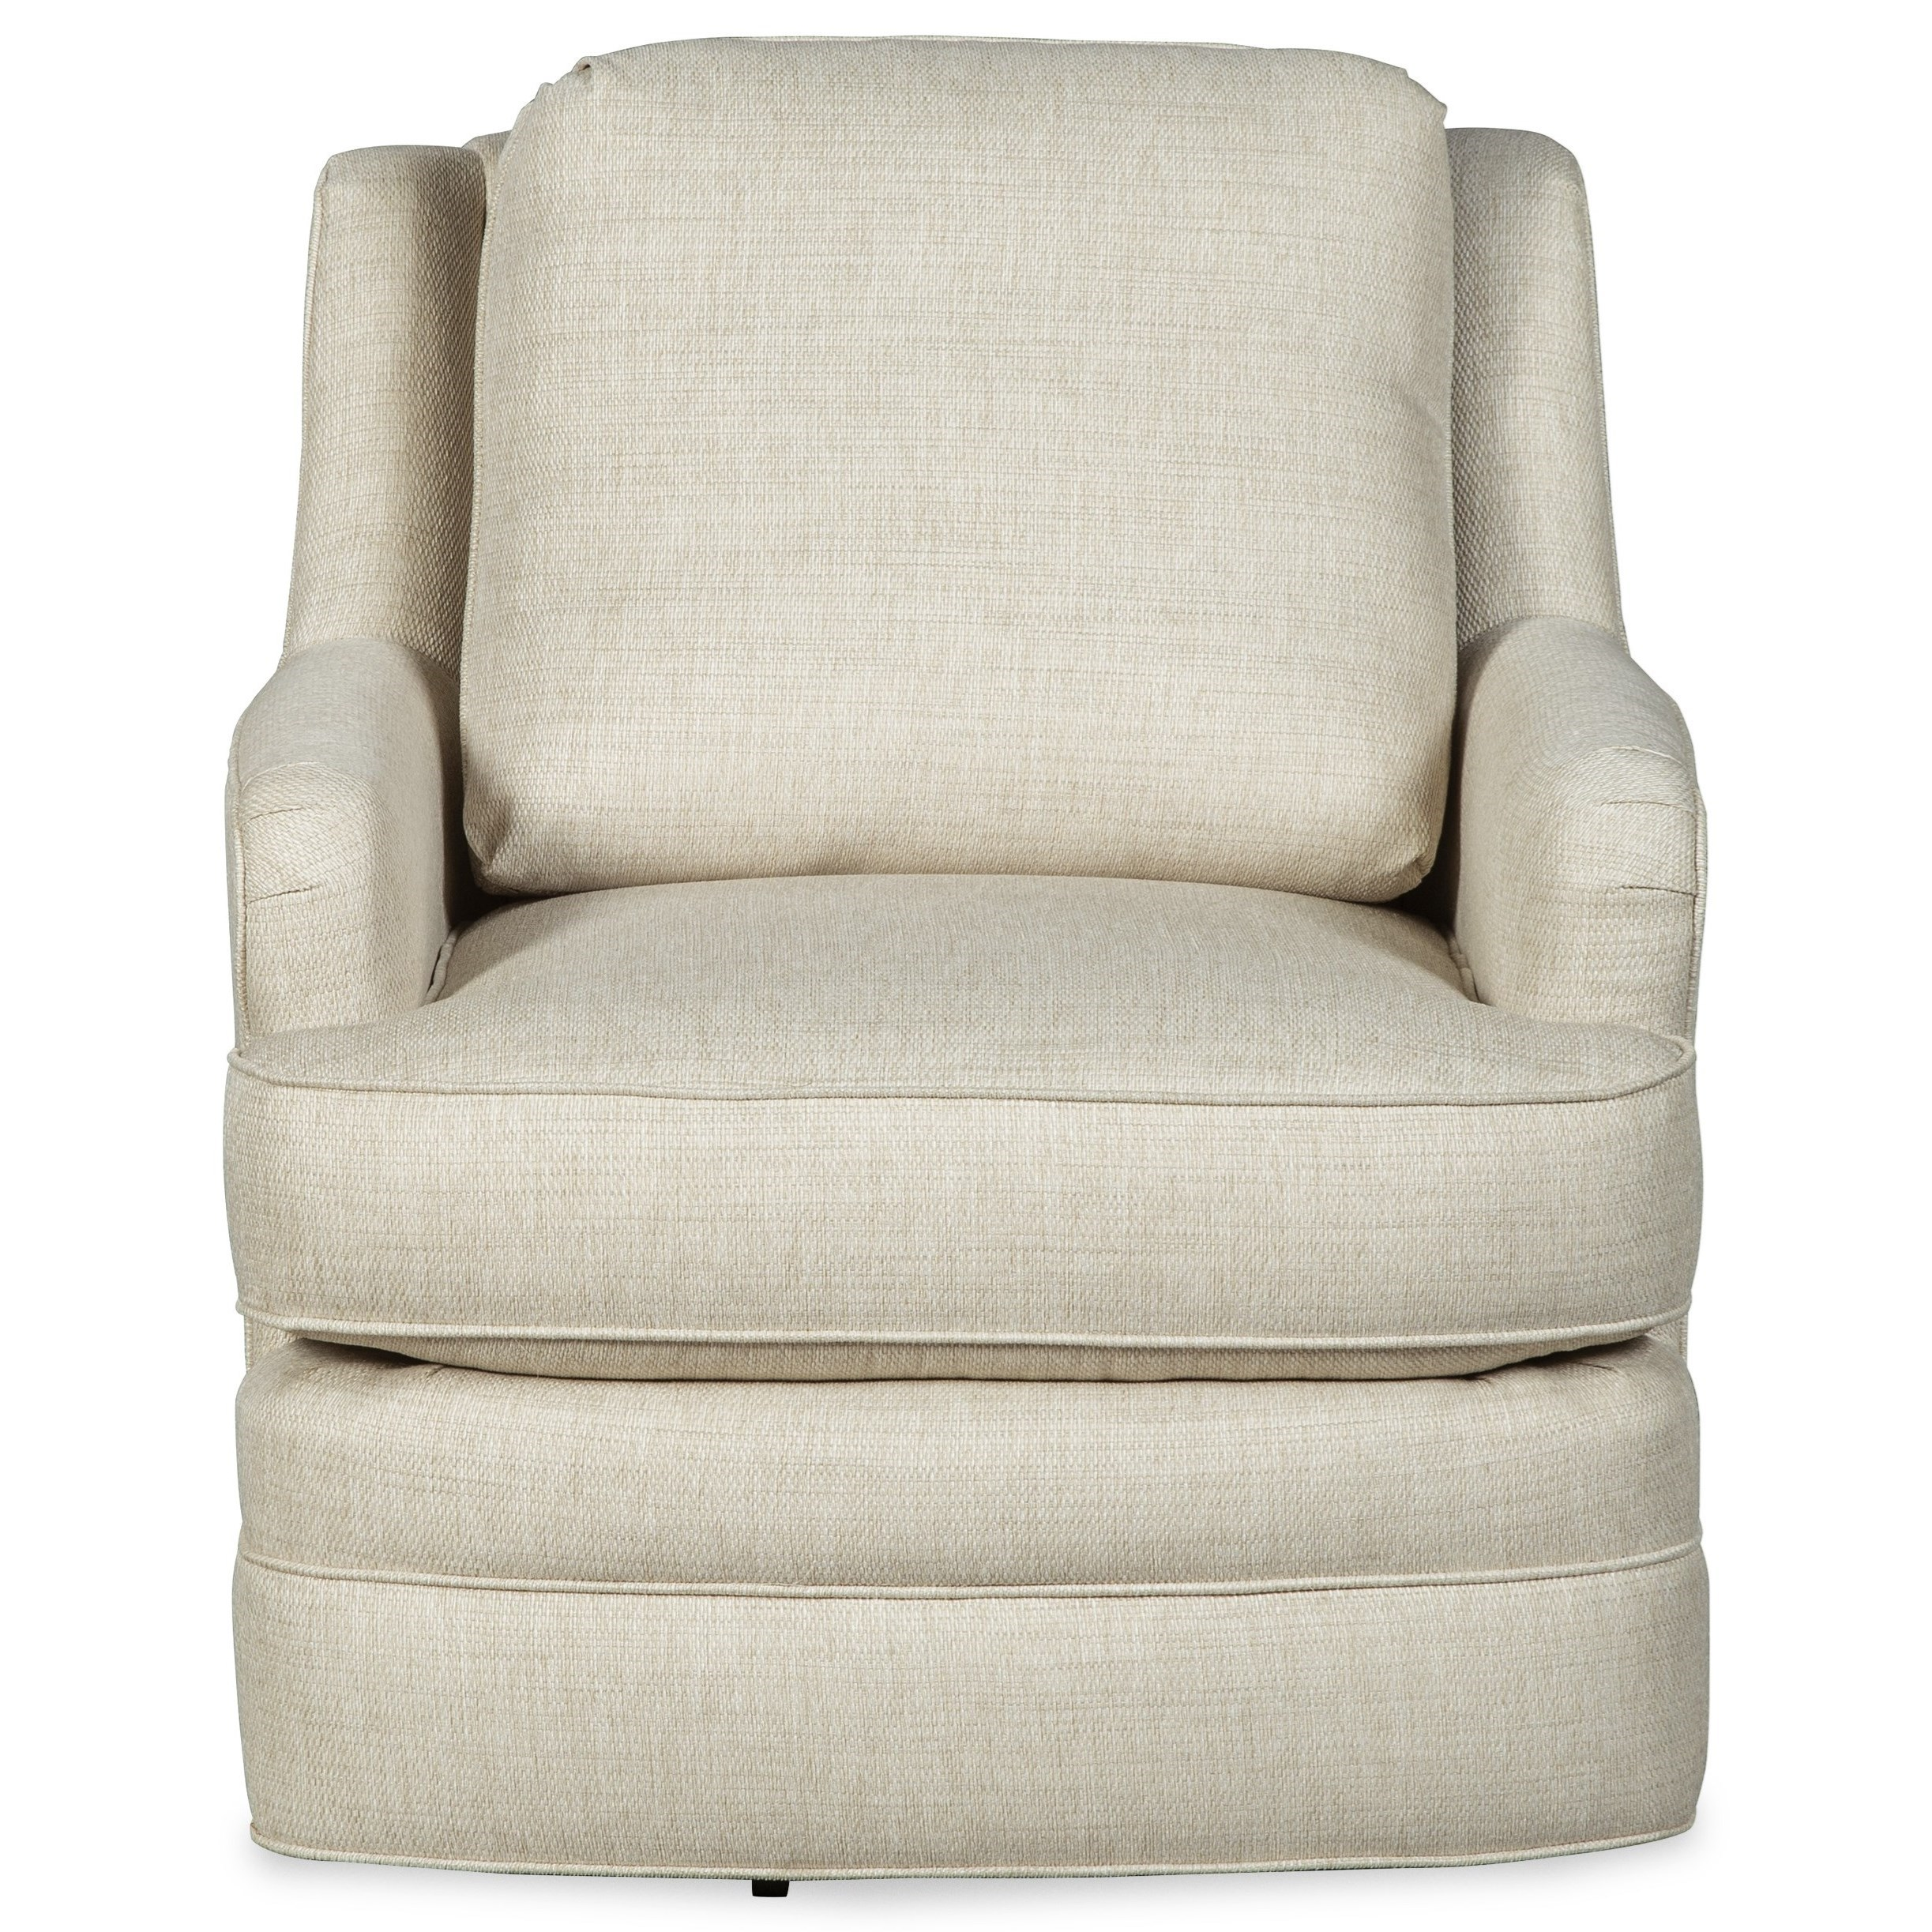 005510 Swivel Chair by Craftmaster at Bullard Furniture